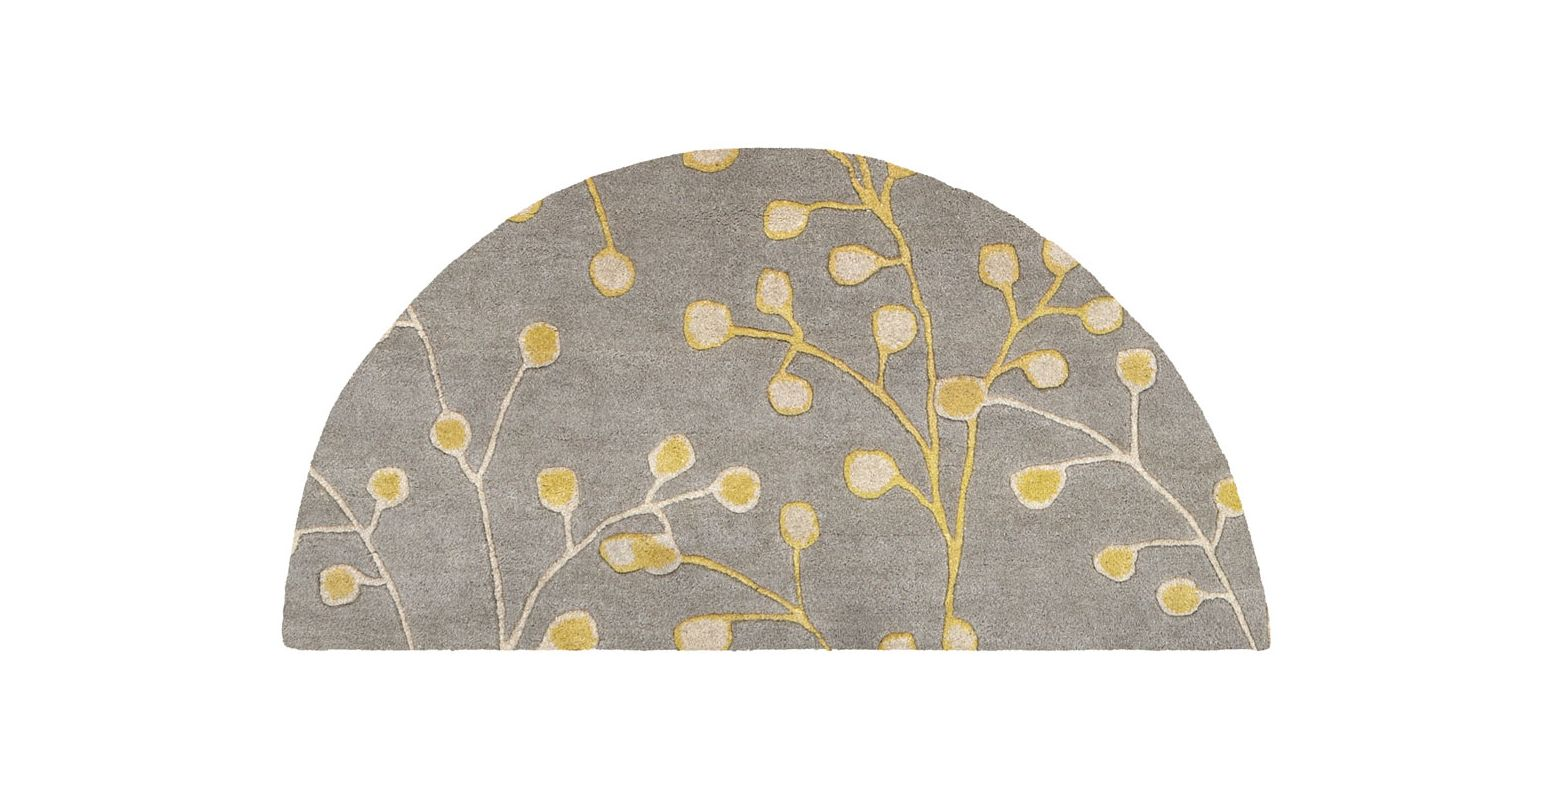 Surya ATH-5060 Athena Hand Tufted Wool Rug Gray 2 x 4 Home Decor Rugs